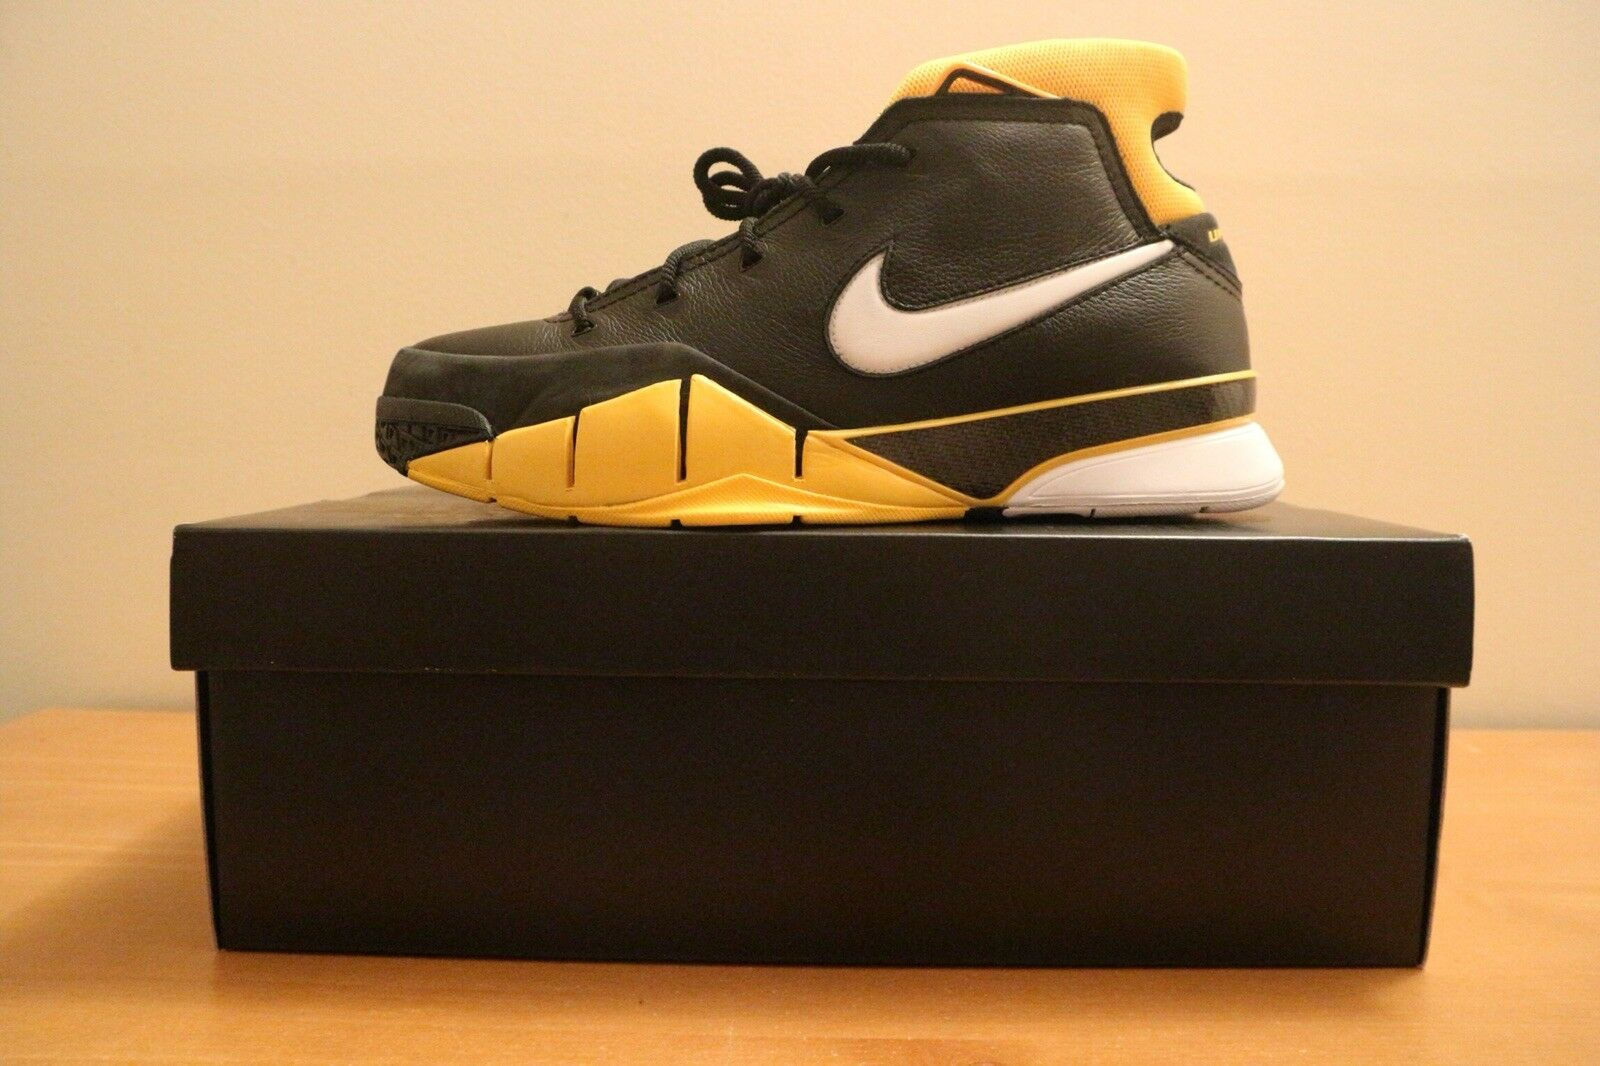 2018 Nike Kobe 1 Protro Black Yellow Sz10.5